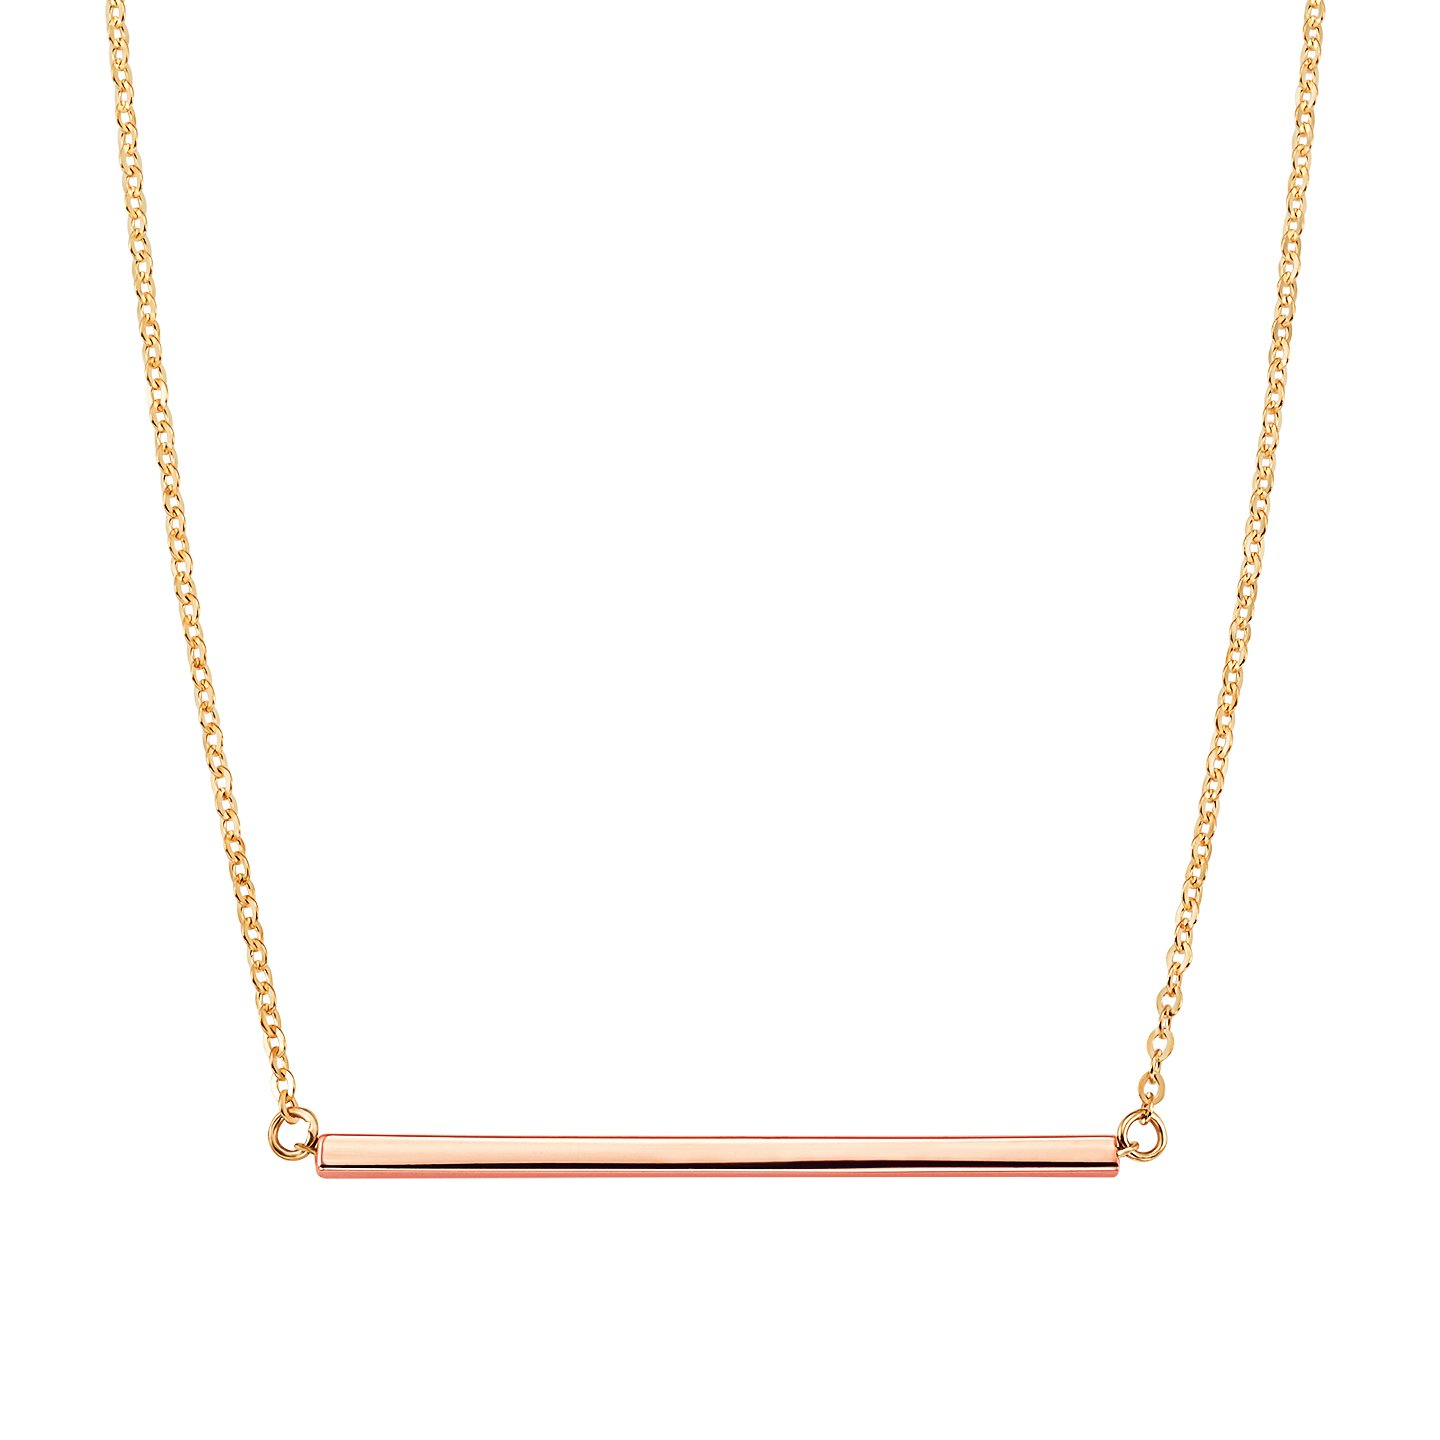 215dd5eb8 Amazon.com: Jewel Connection 14K Modern Rose Gold Bar Necklace with  Adjustable Yellow Gold Chain: Jewelry